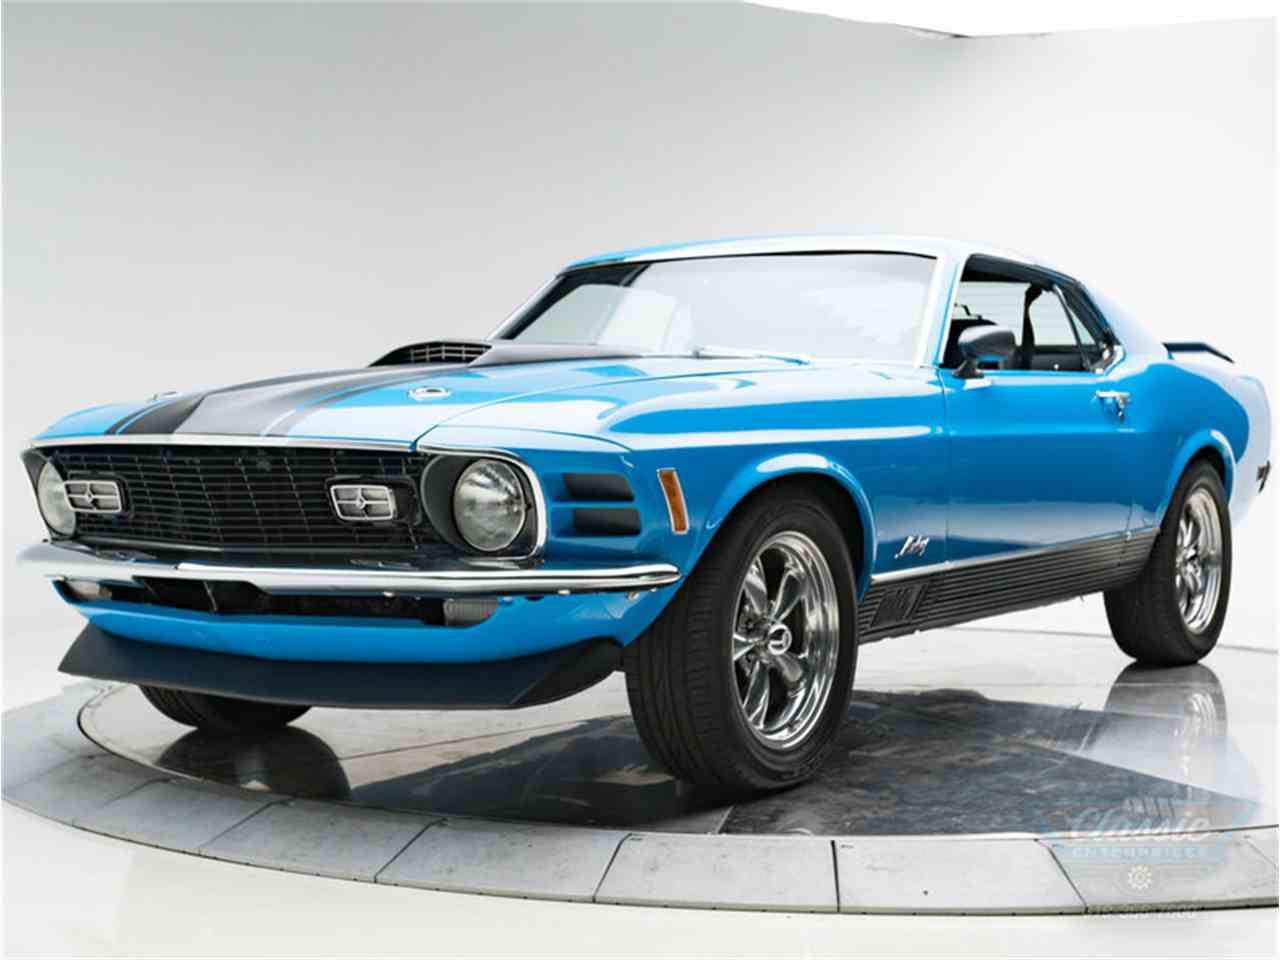 Large Picture of Classic 1970 Mustang Mach 1 located in Cedar Rapids Iowa - $42,950.00 Offered by Classic Enterprises - LWJF